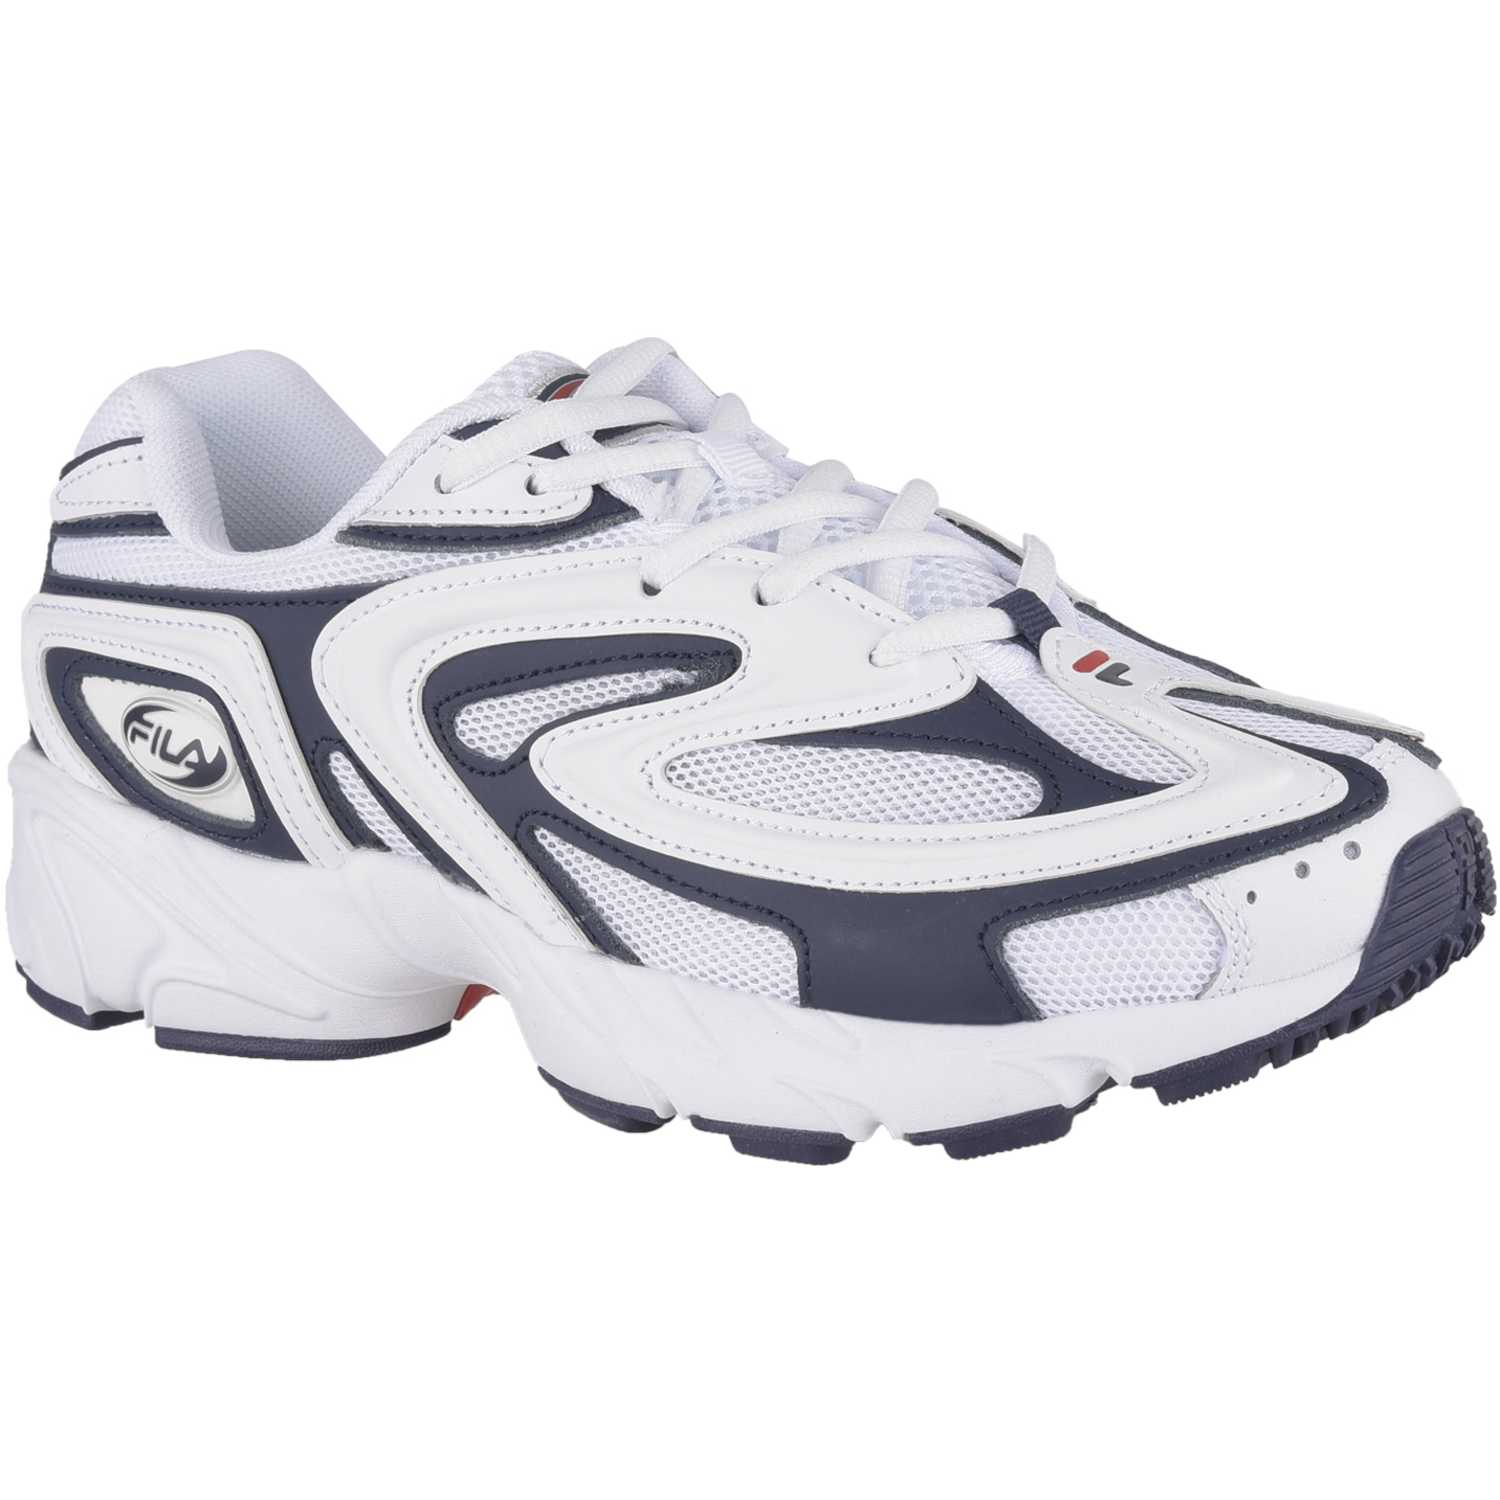 Fila fila buzzard fem Blanco / negro Walking